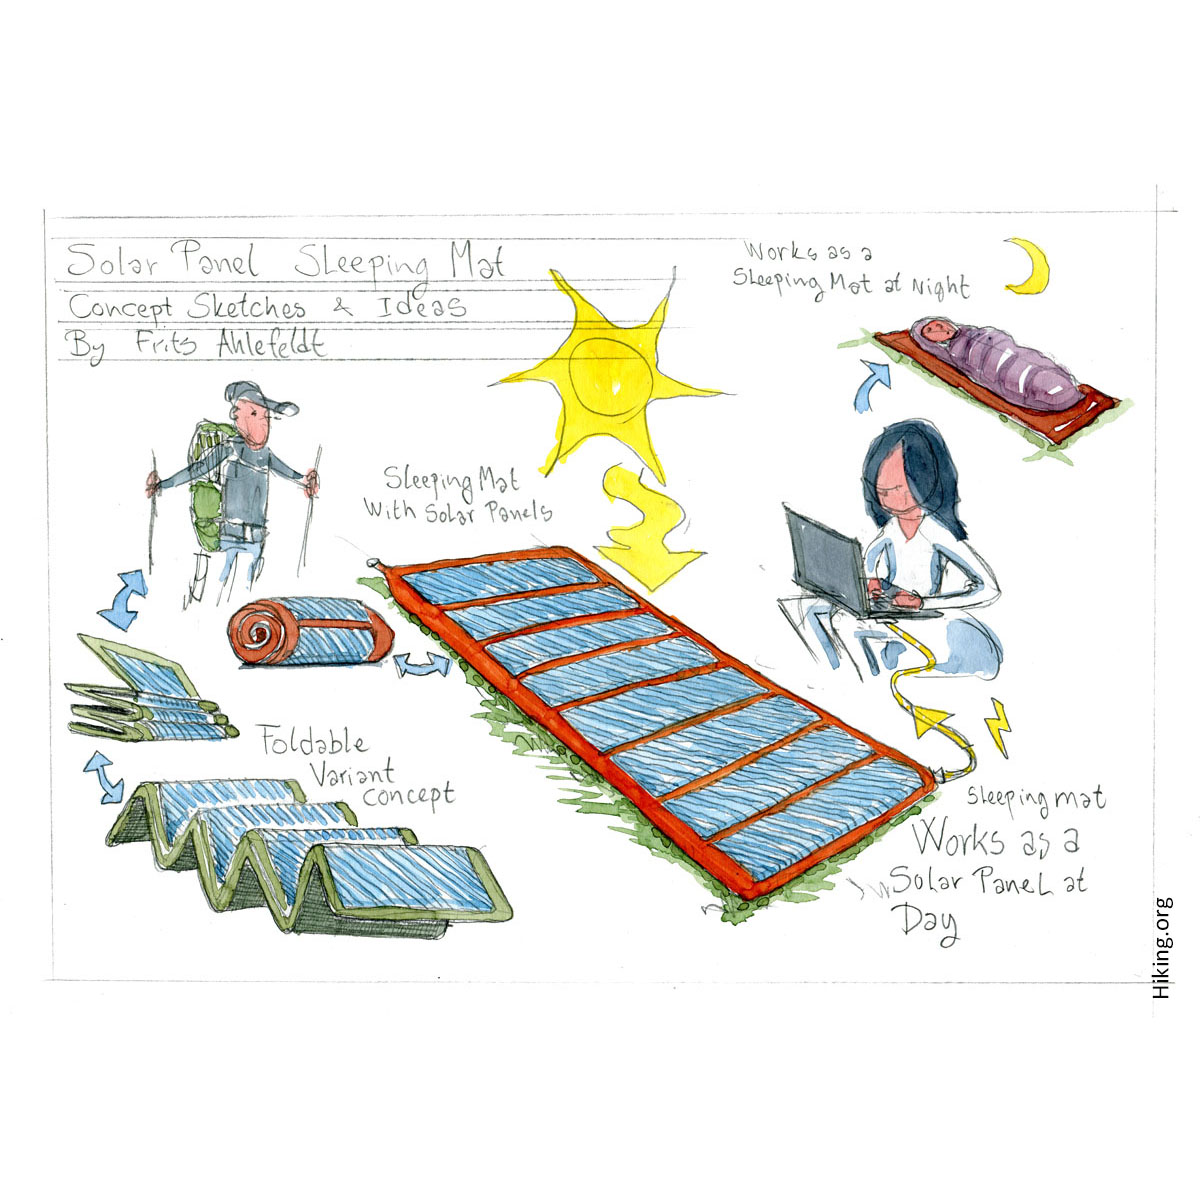 Sleeping pads with solar charger. concept sketch Drawing by Frits Ahlefeldt